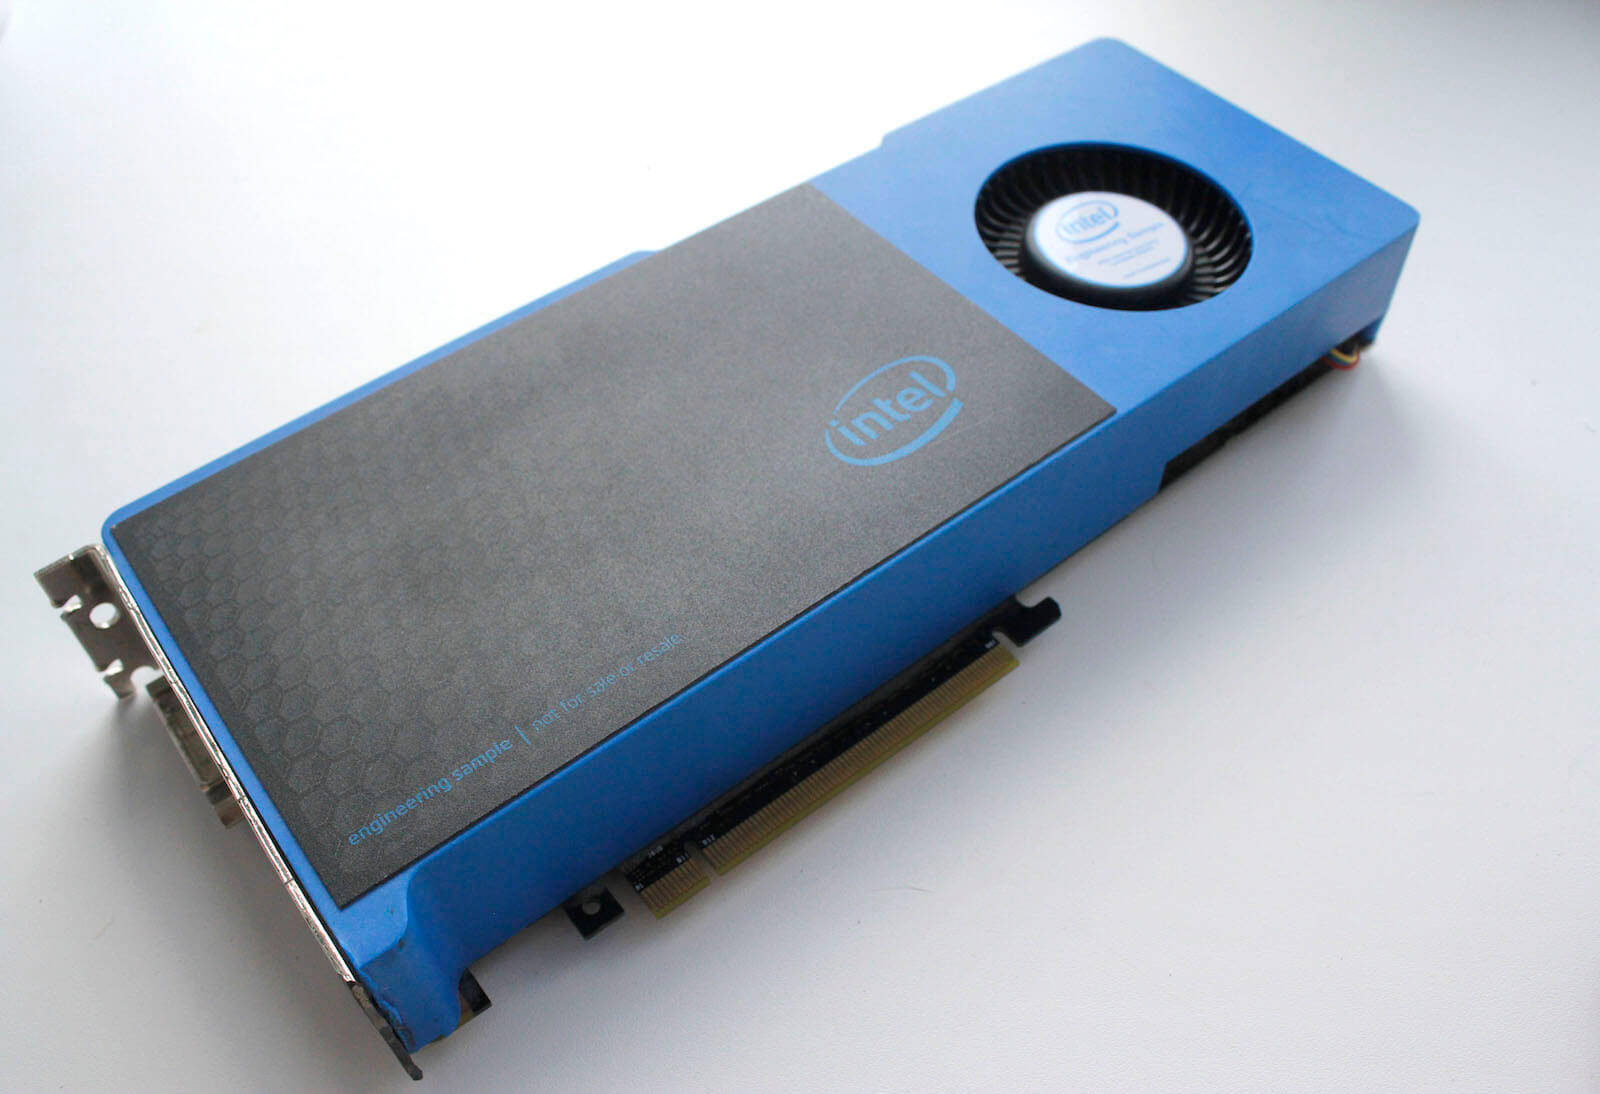 Intel: Expect our first discrete GPUs by 2020